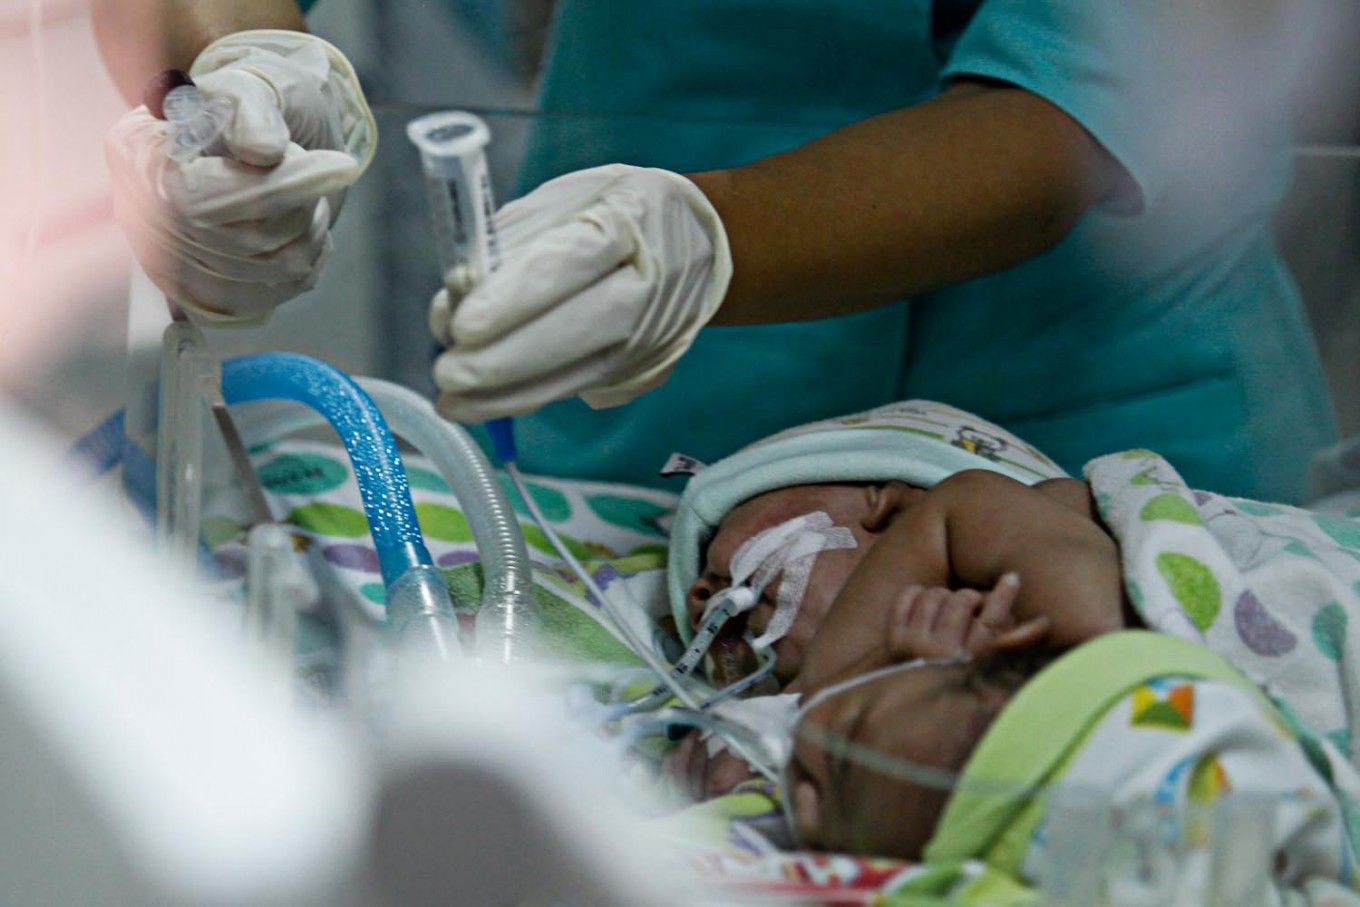 Thoraco-omphalopagus conjoined twins get intensive treatment at W. Java hospital